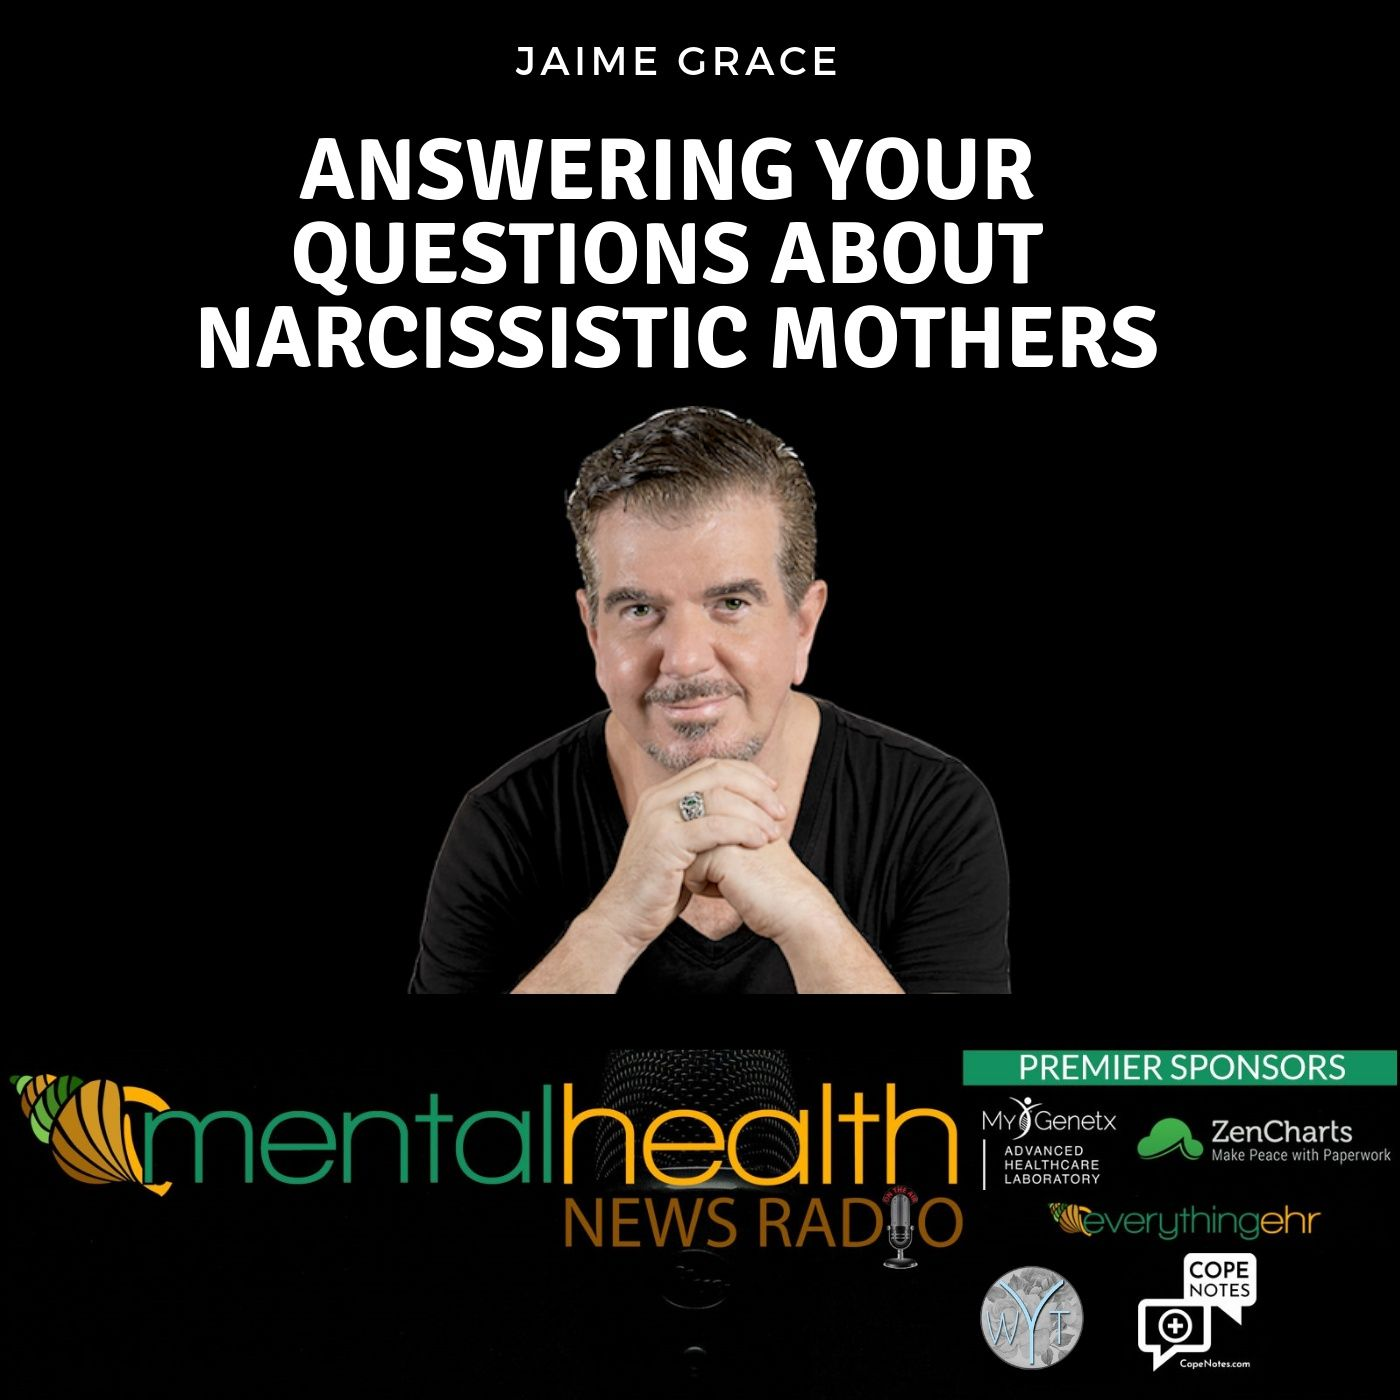 Mental Health News Radio - Jaime Grace Answers Your Questions About Narcissistic Mothers